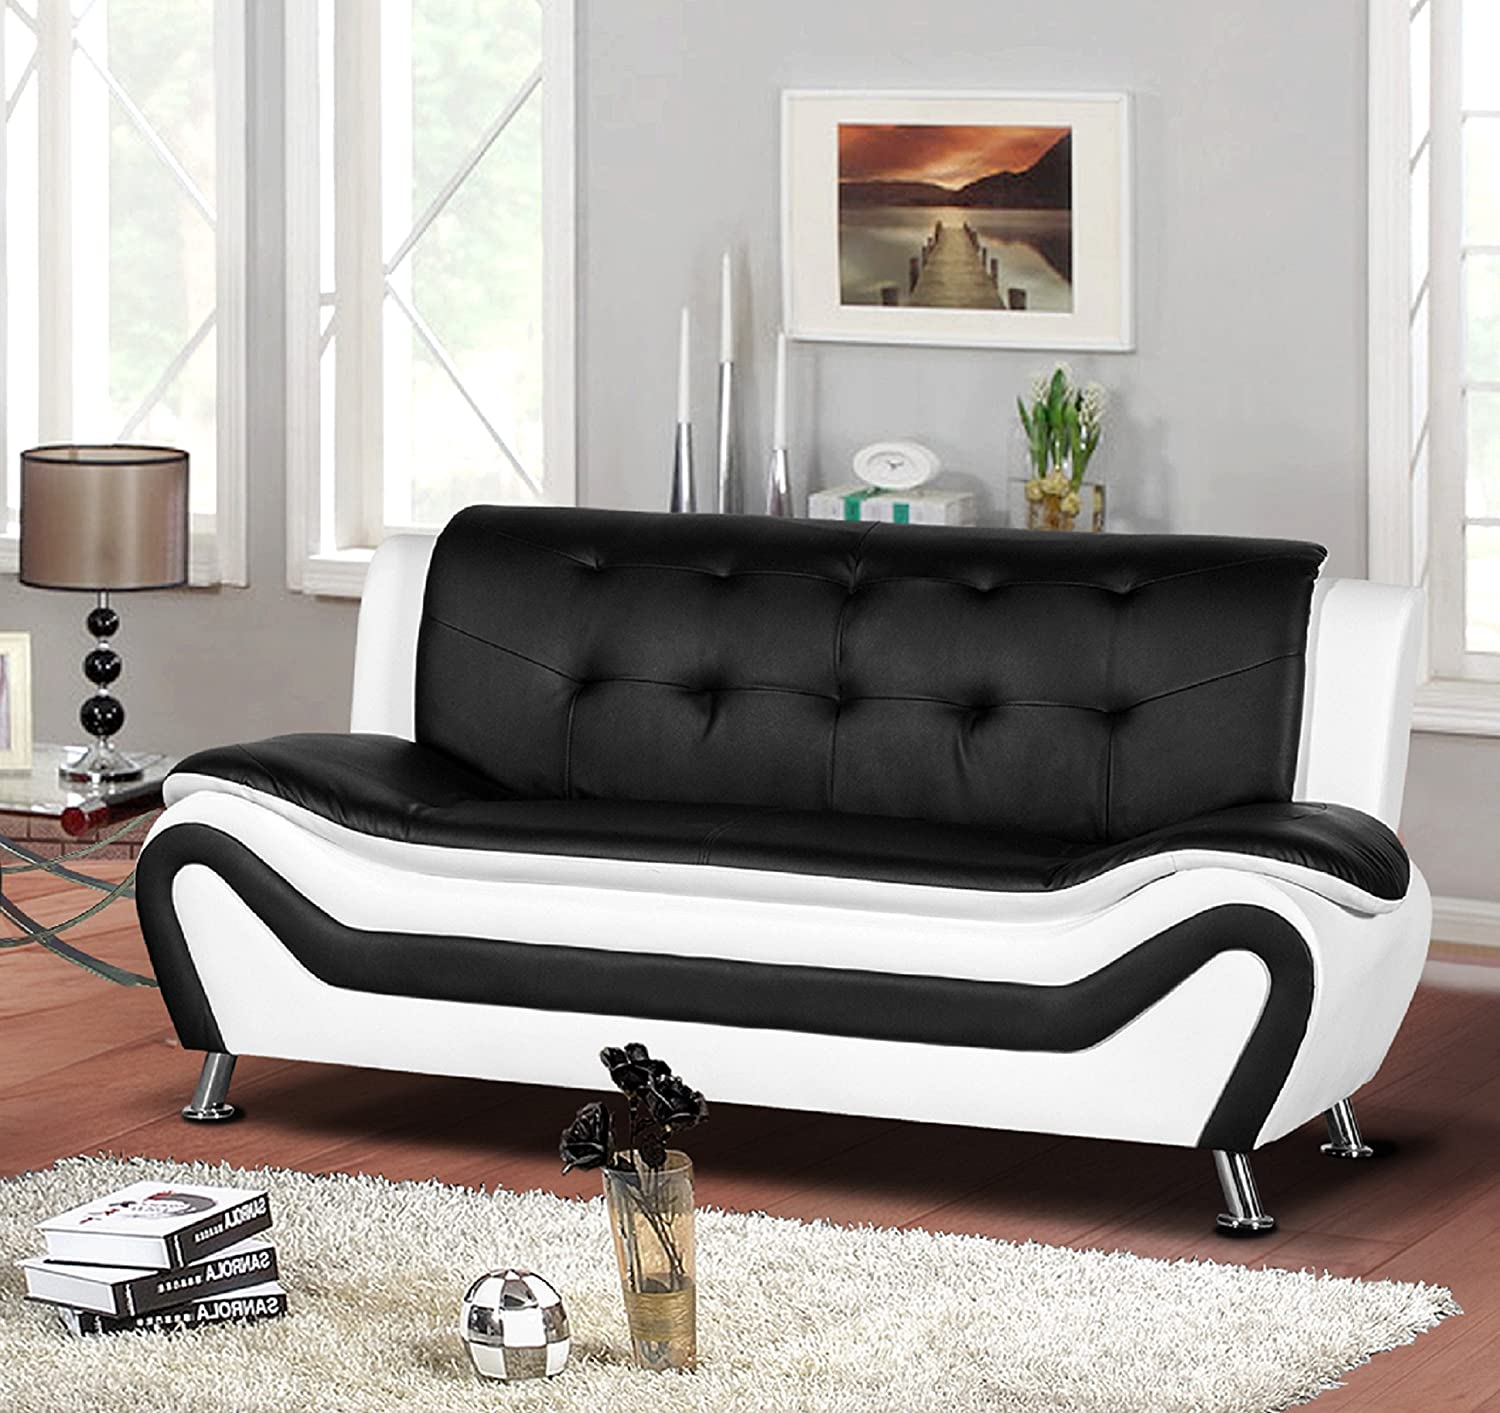 Amazon com container furniture direct s5411 s arul leather air upholstered mid century modern sofa 77 5 black white kitchen dining